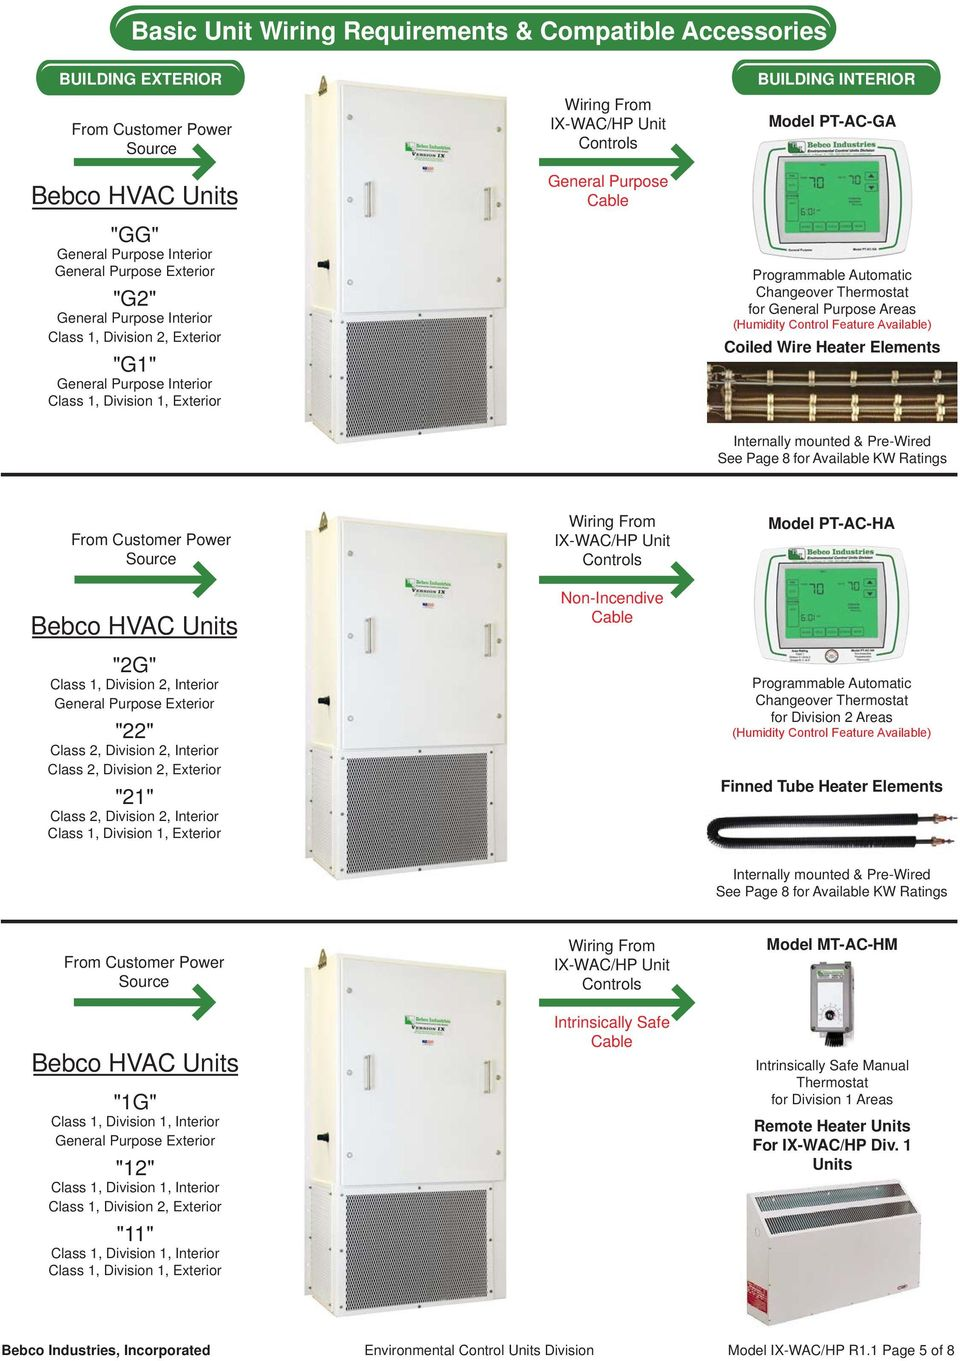 Model Ix Wac Hp Air Conditioners Heat Pumps For Highly Corrosive General Thermostat Wiring Programmable Automatic Changeover Purpose Areas Humidity Control Feature Available Coiled Wire